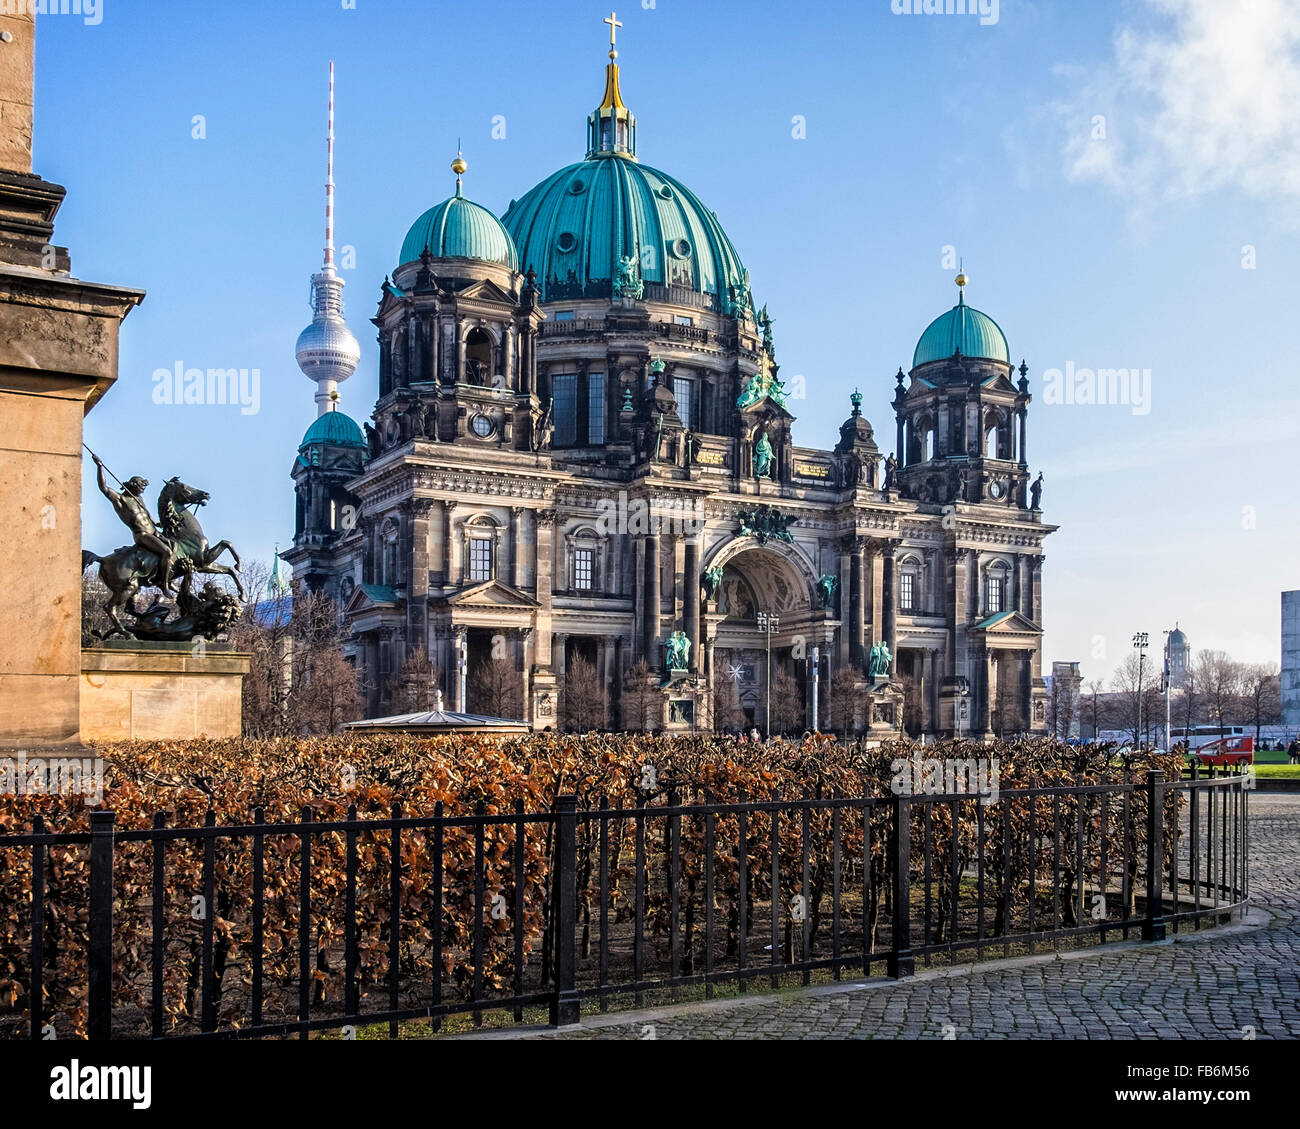 Berlin Cathedral Berliner Dom High Renaissance Baroque